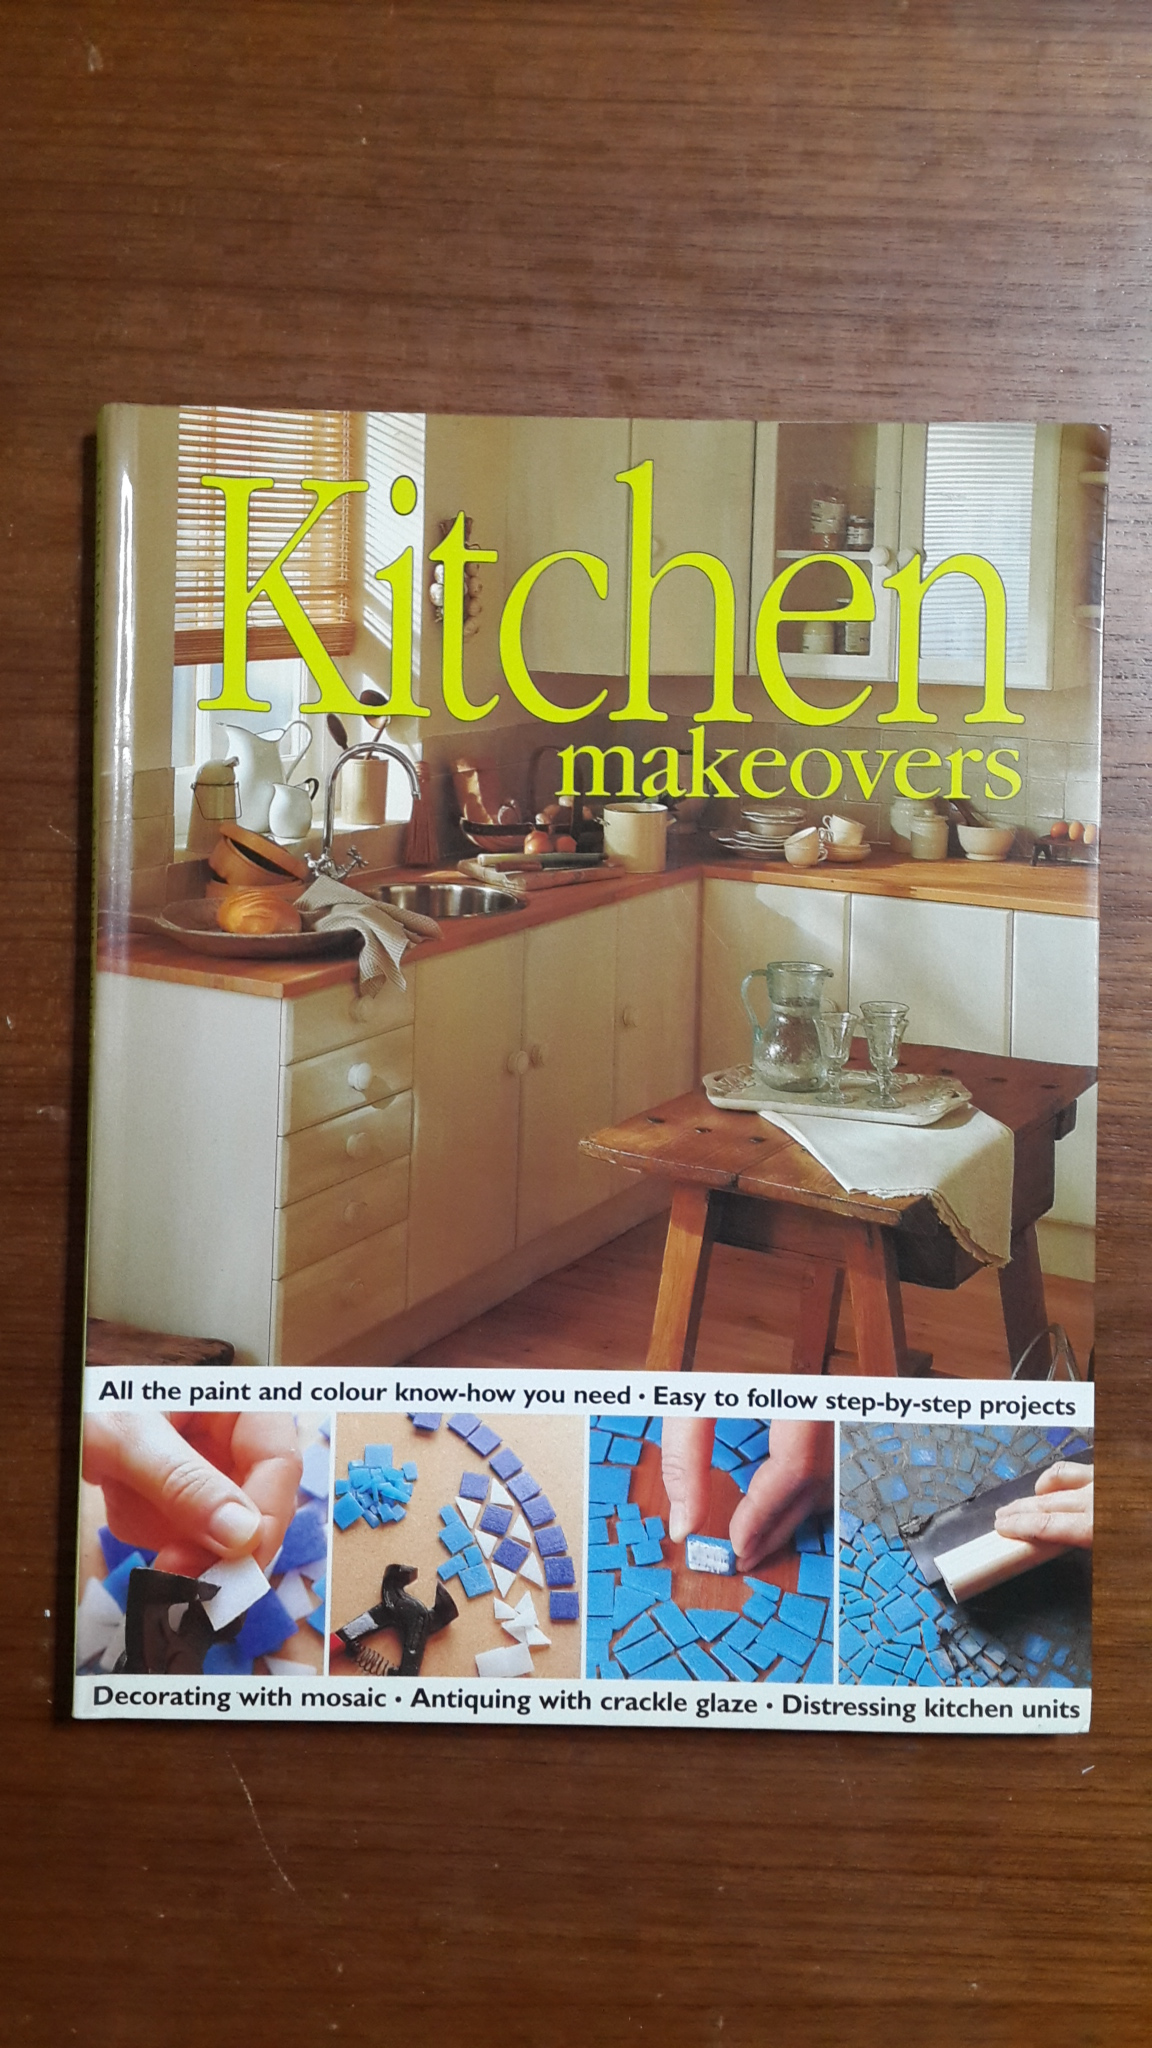 Kitchen makeovers / CATHERINE CUMMING